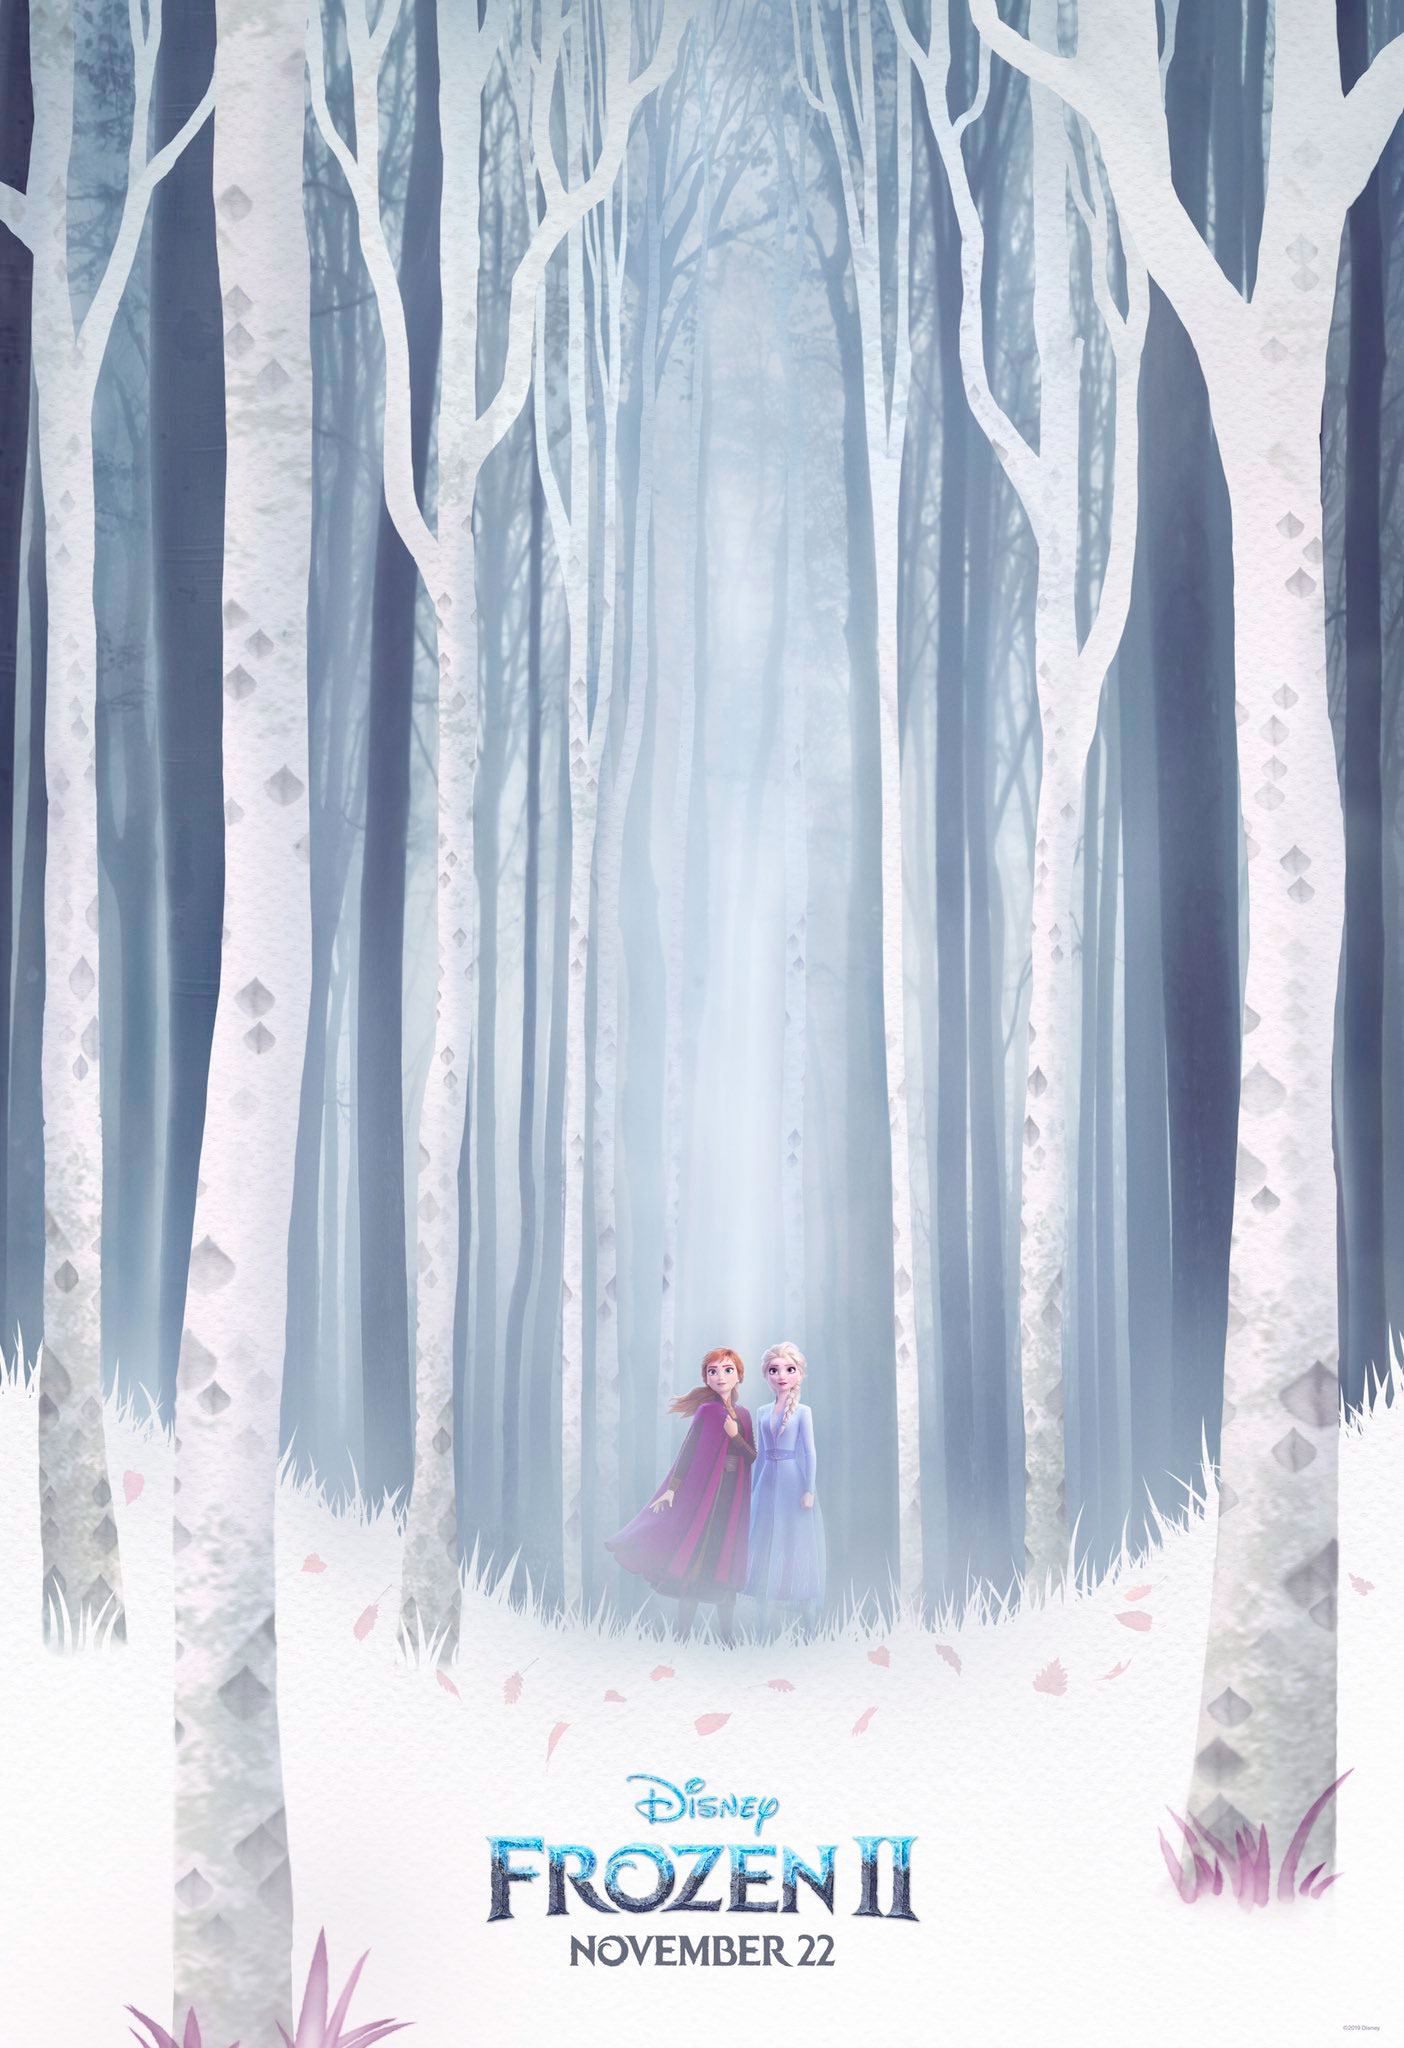 new-frozen-ii-poster-and-photos-of-new-characters-played-by-evan-rachel-wood-and-sterling-k-brown45